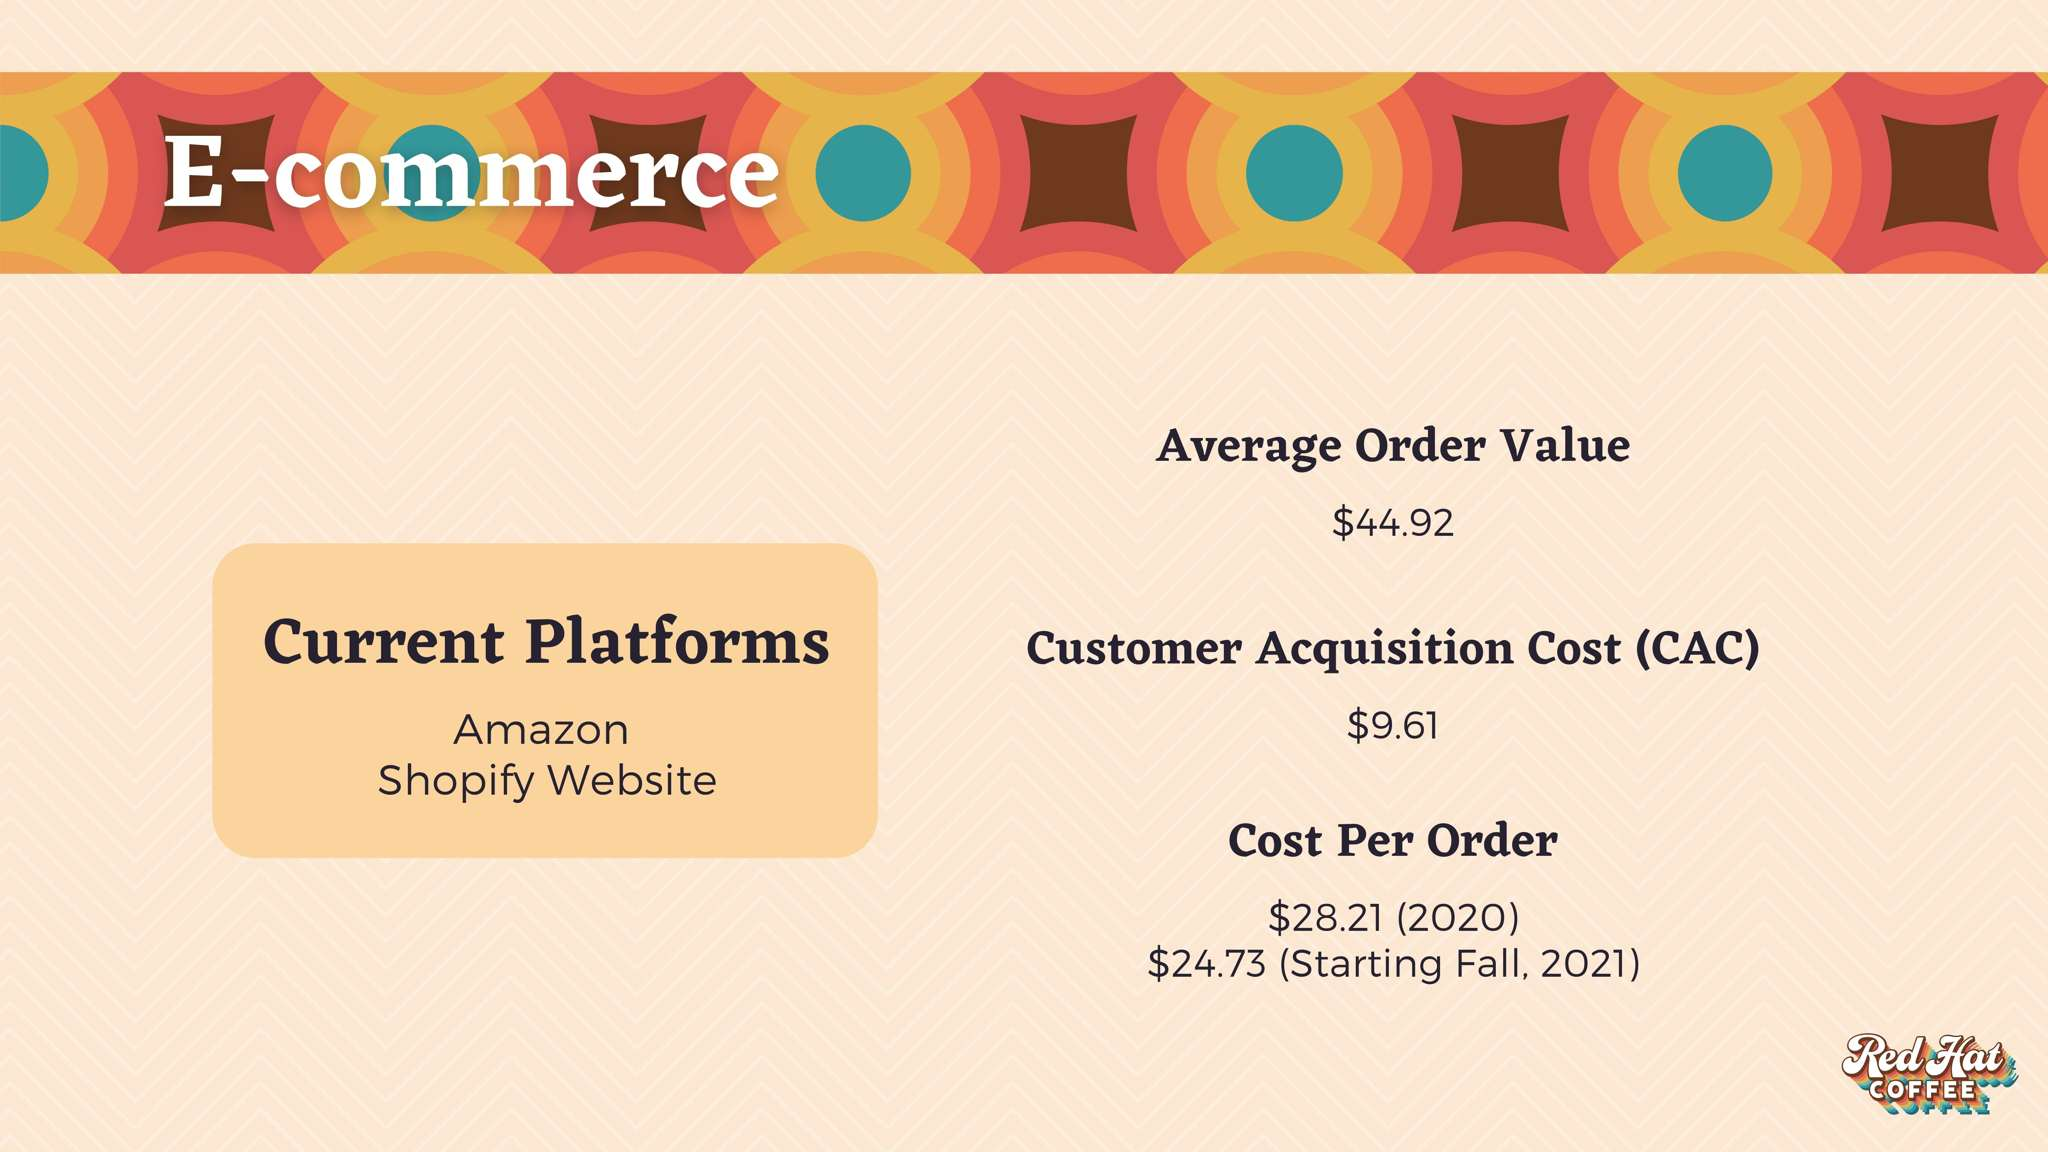 Our E-commerce is served through two platforms: Amazon and our Shopify website. Our Average Order Value, Cost Per Order, Customer Acquisition Cost and Repurchase Rate are listed below